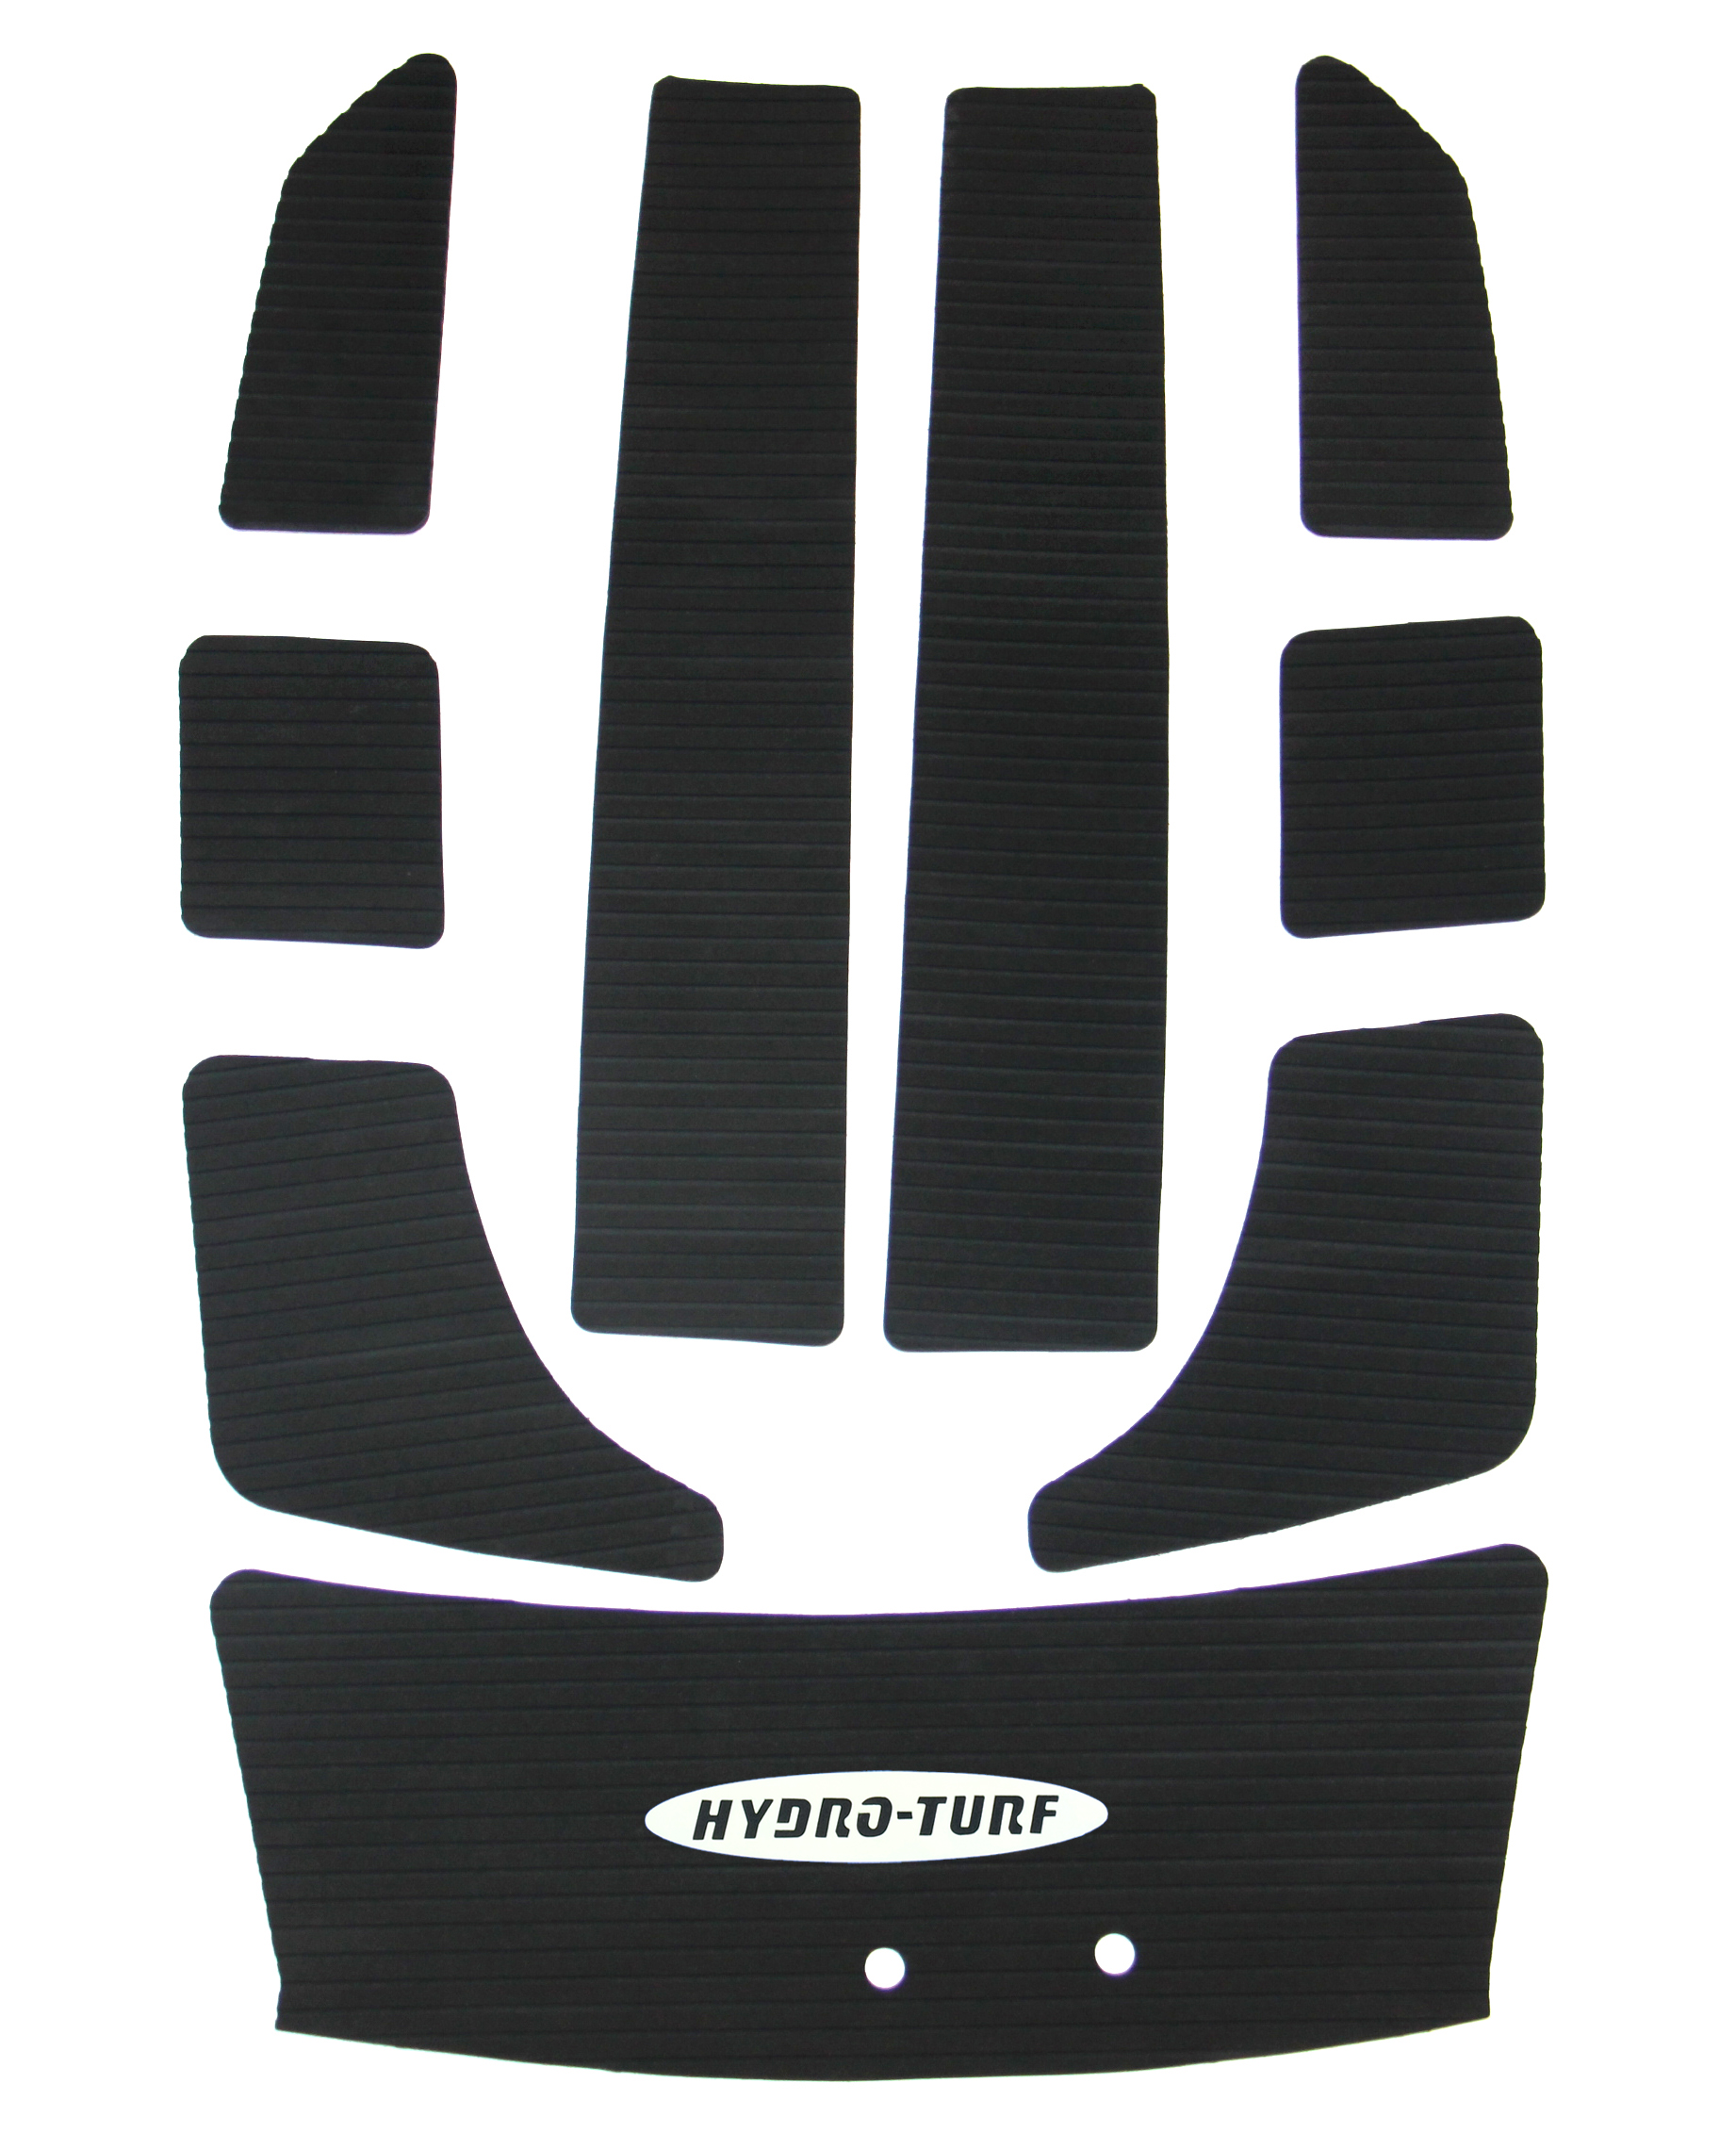 Hydro turf Mat Kit for Yamaha WaveBlaster II